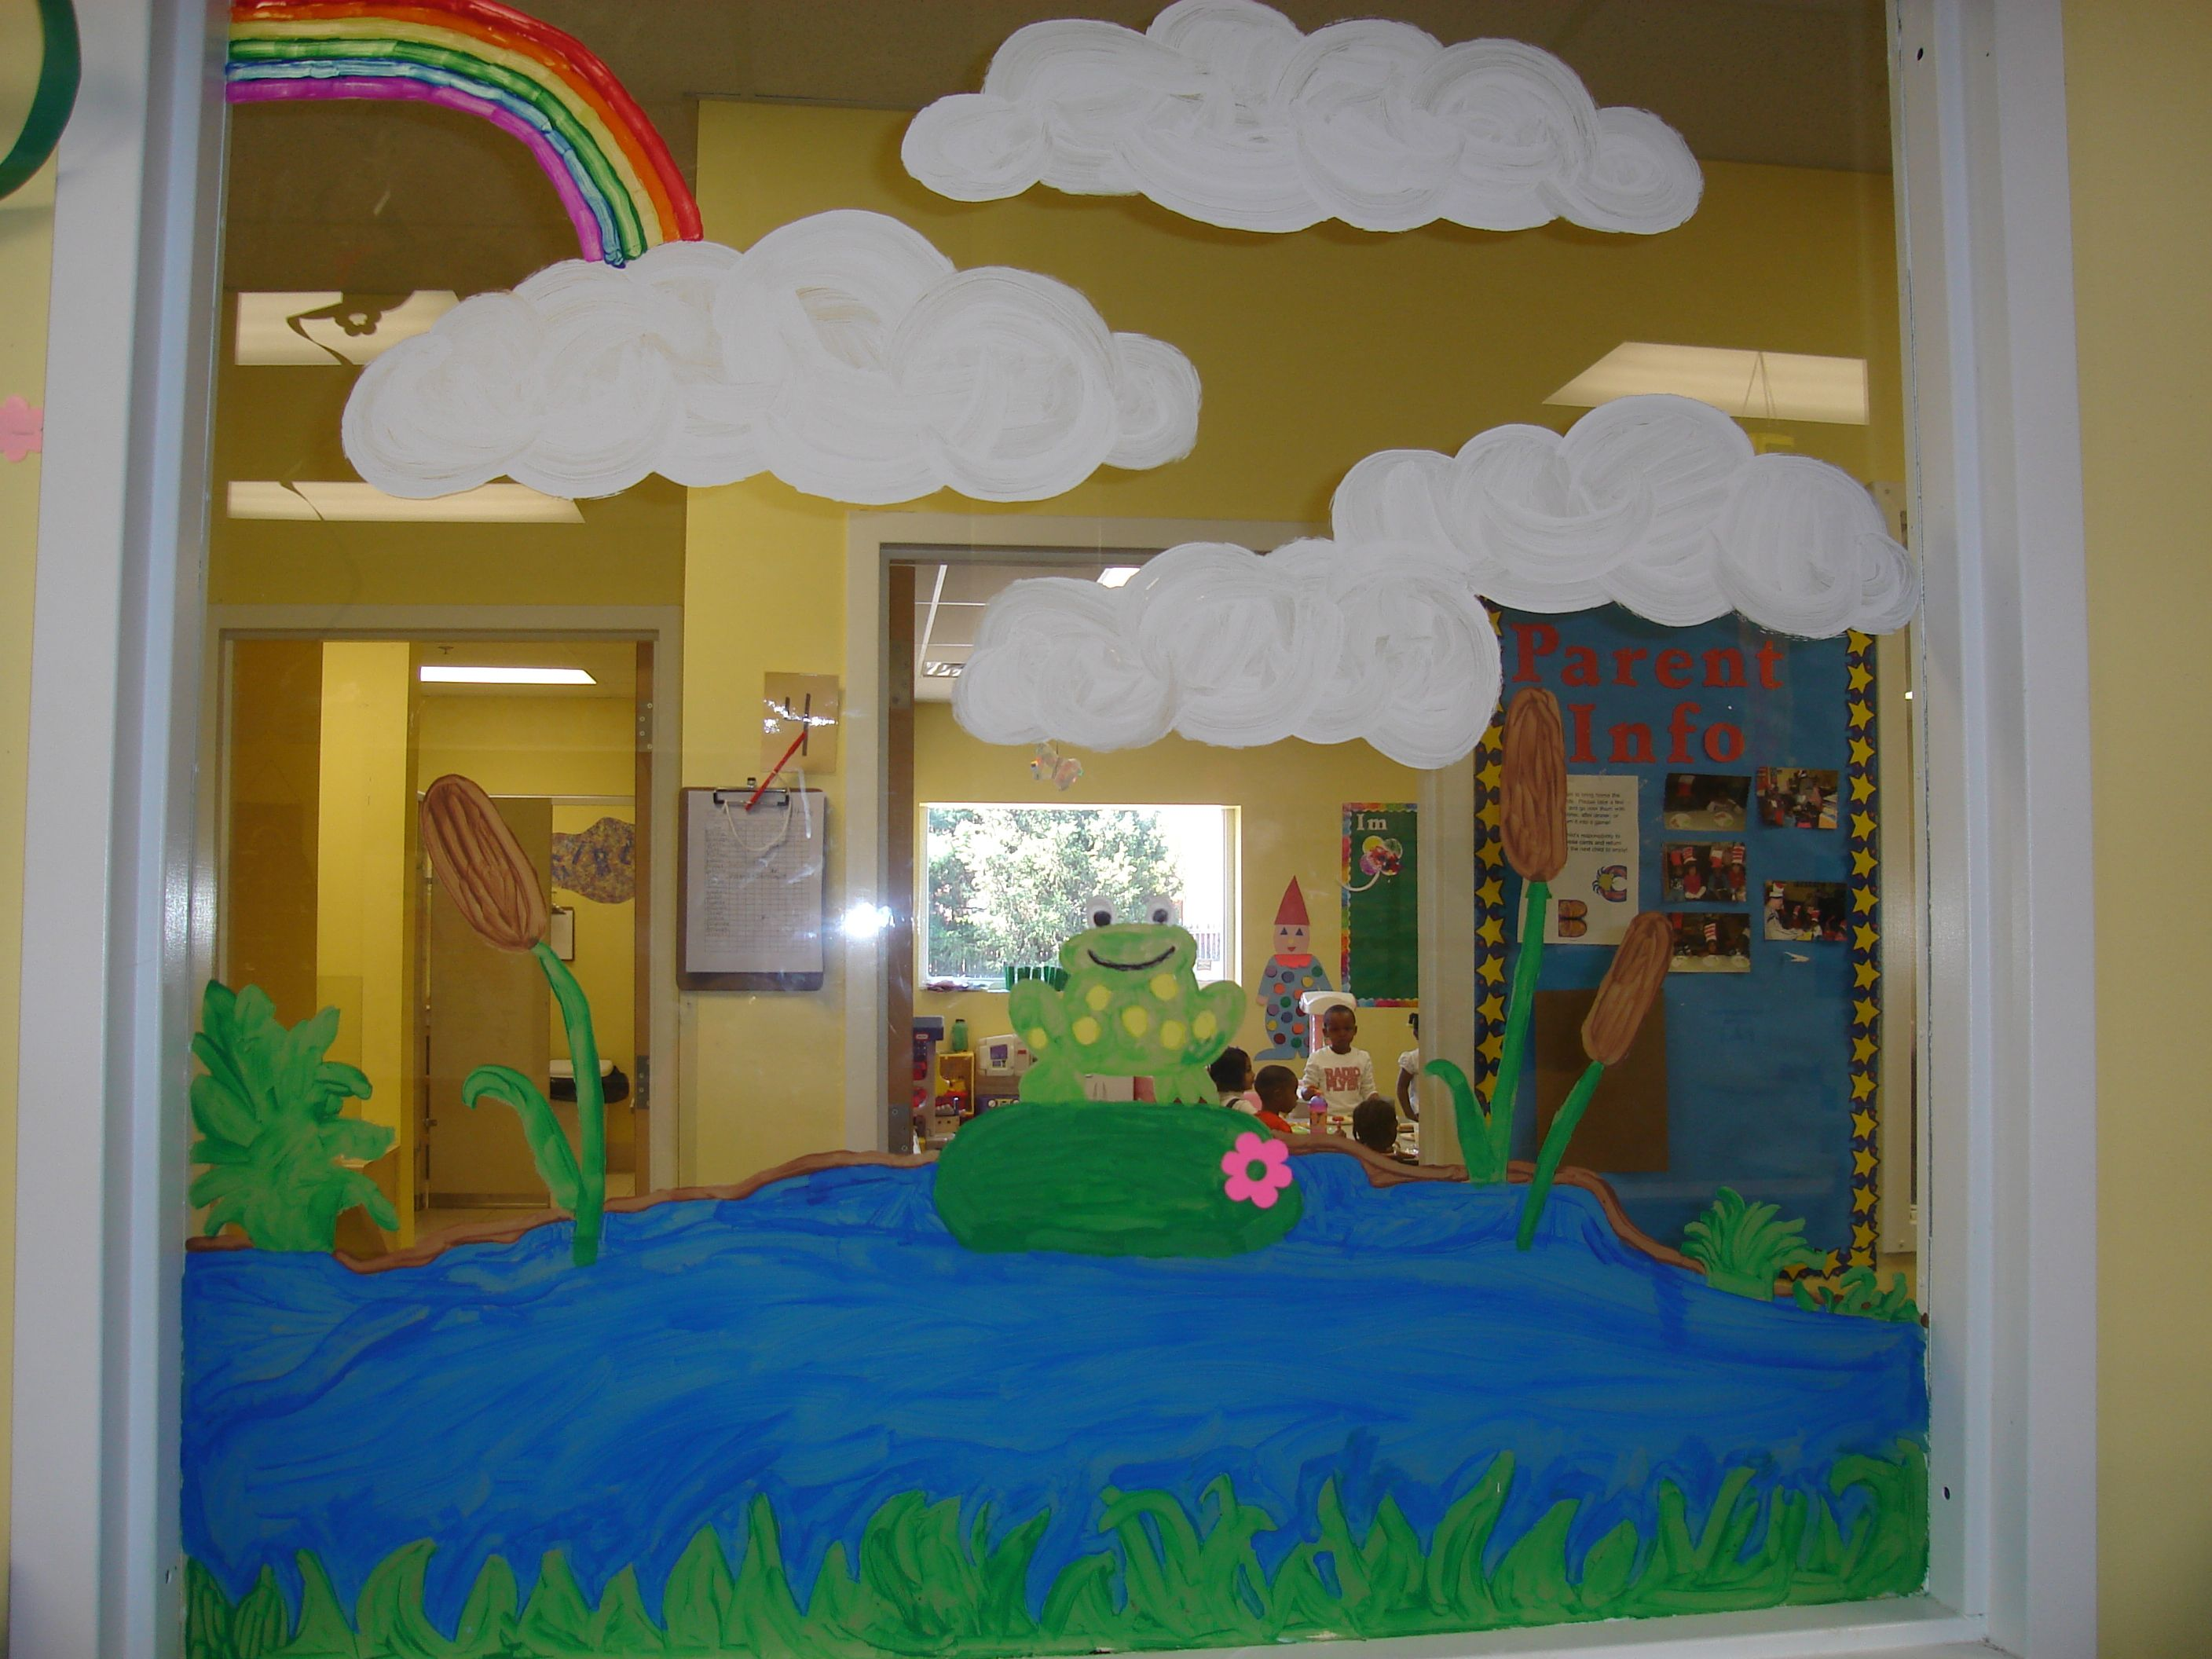 Classroom Windows Decoration Ideas ~ Frog classroom decorations painted a on